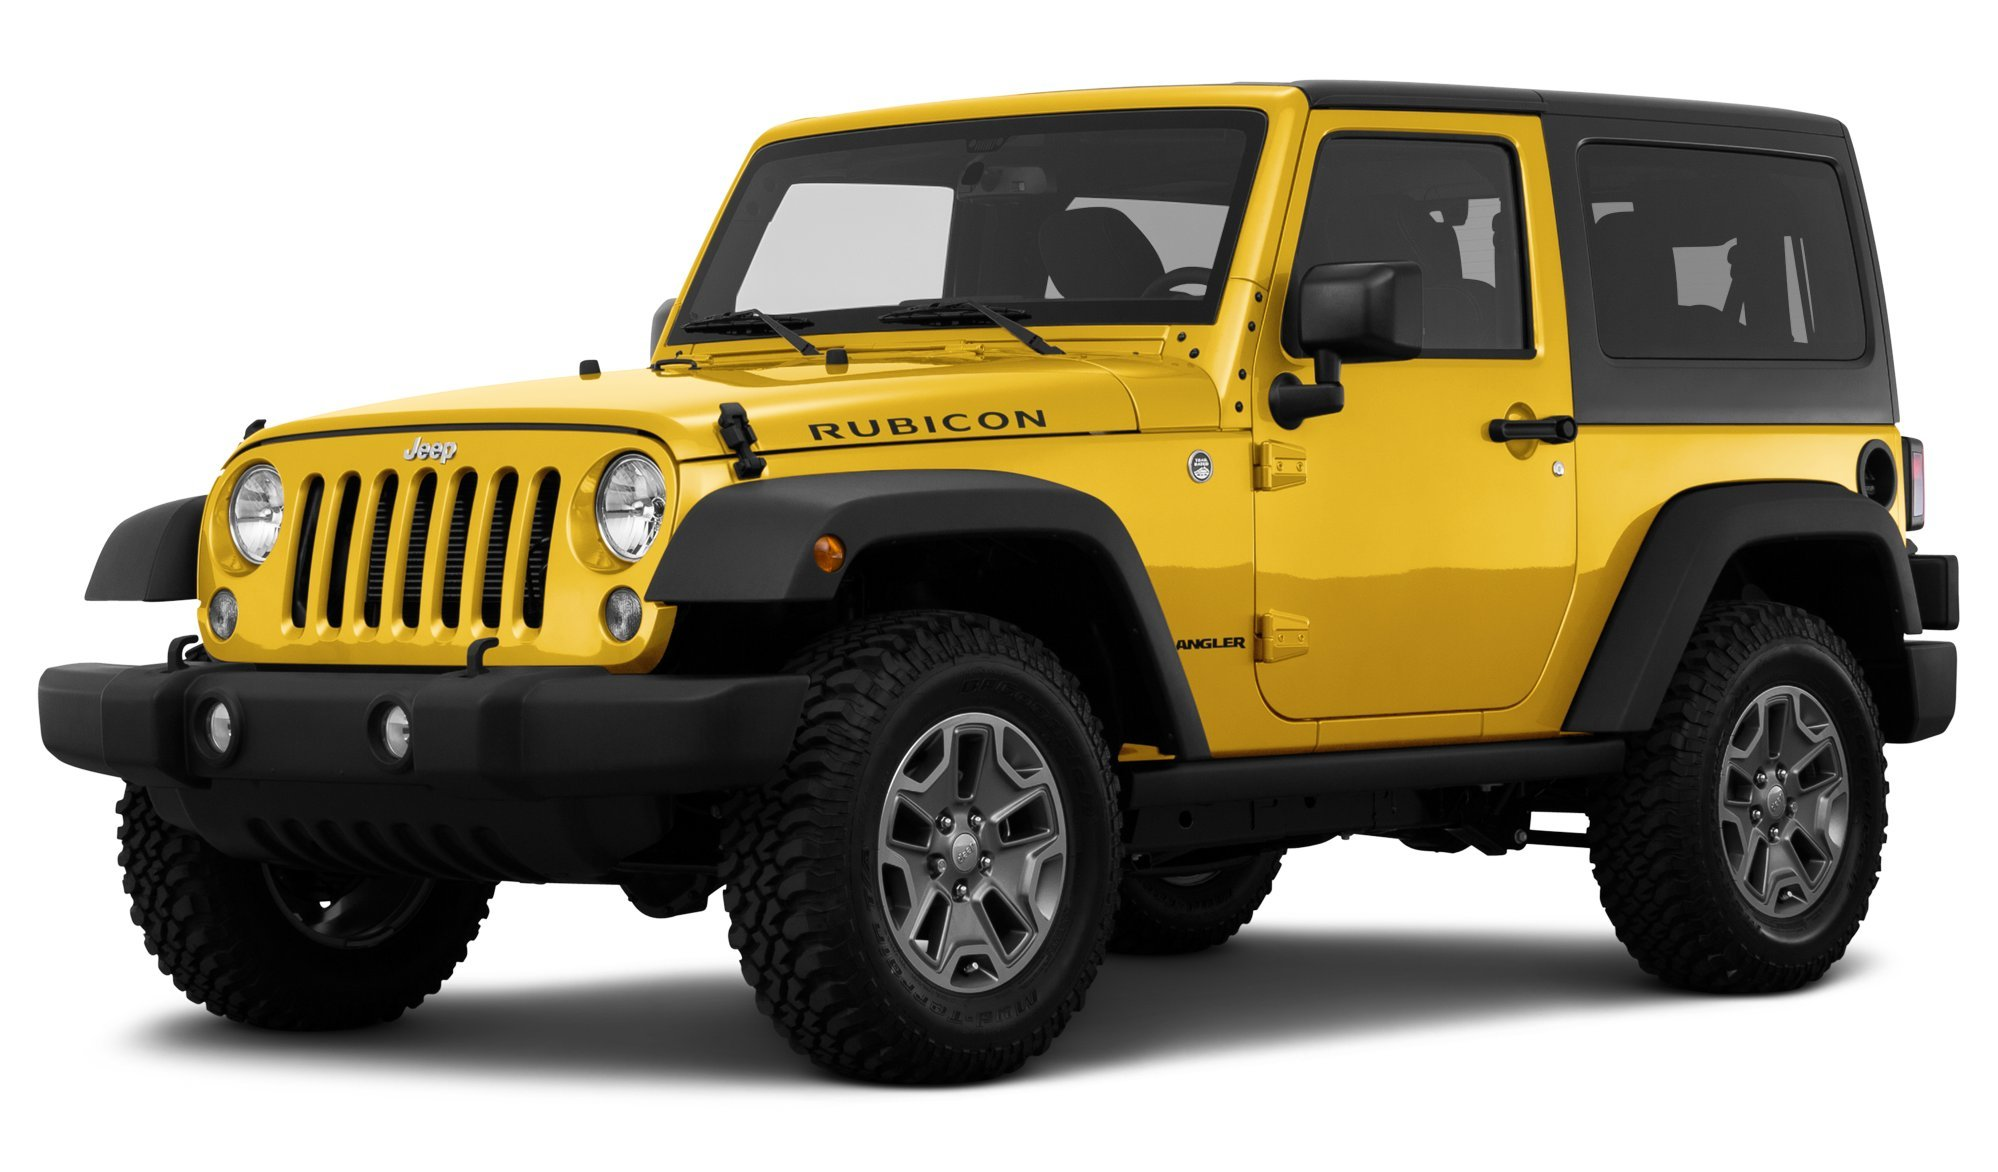 Hard Top Wrangler Tj >> Amazon.com: 2015 Jeep Wrangler Reviews, Images, and Specs: Vehicles